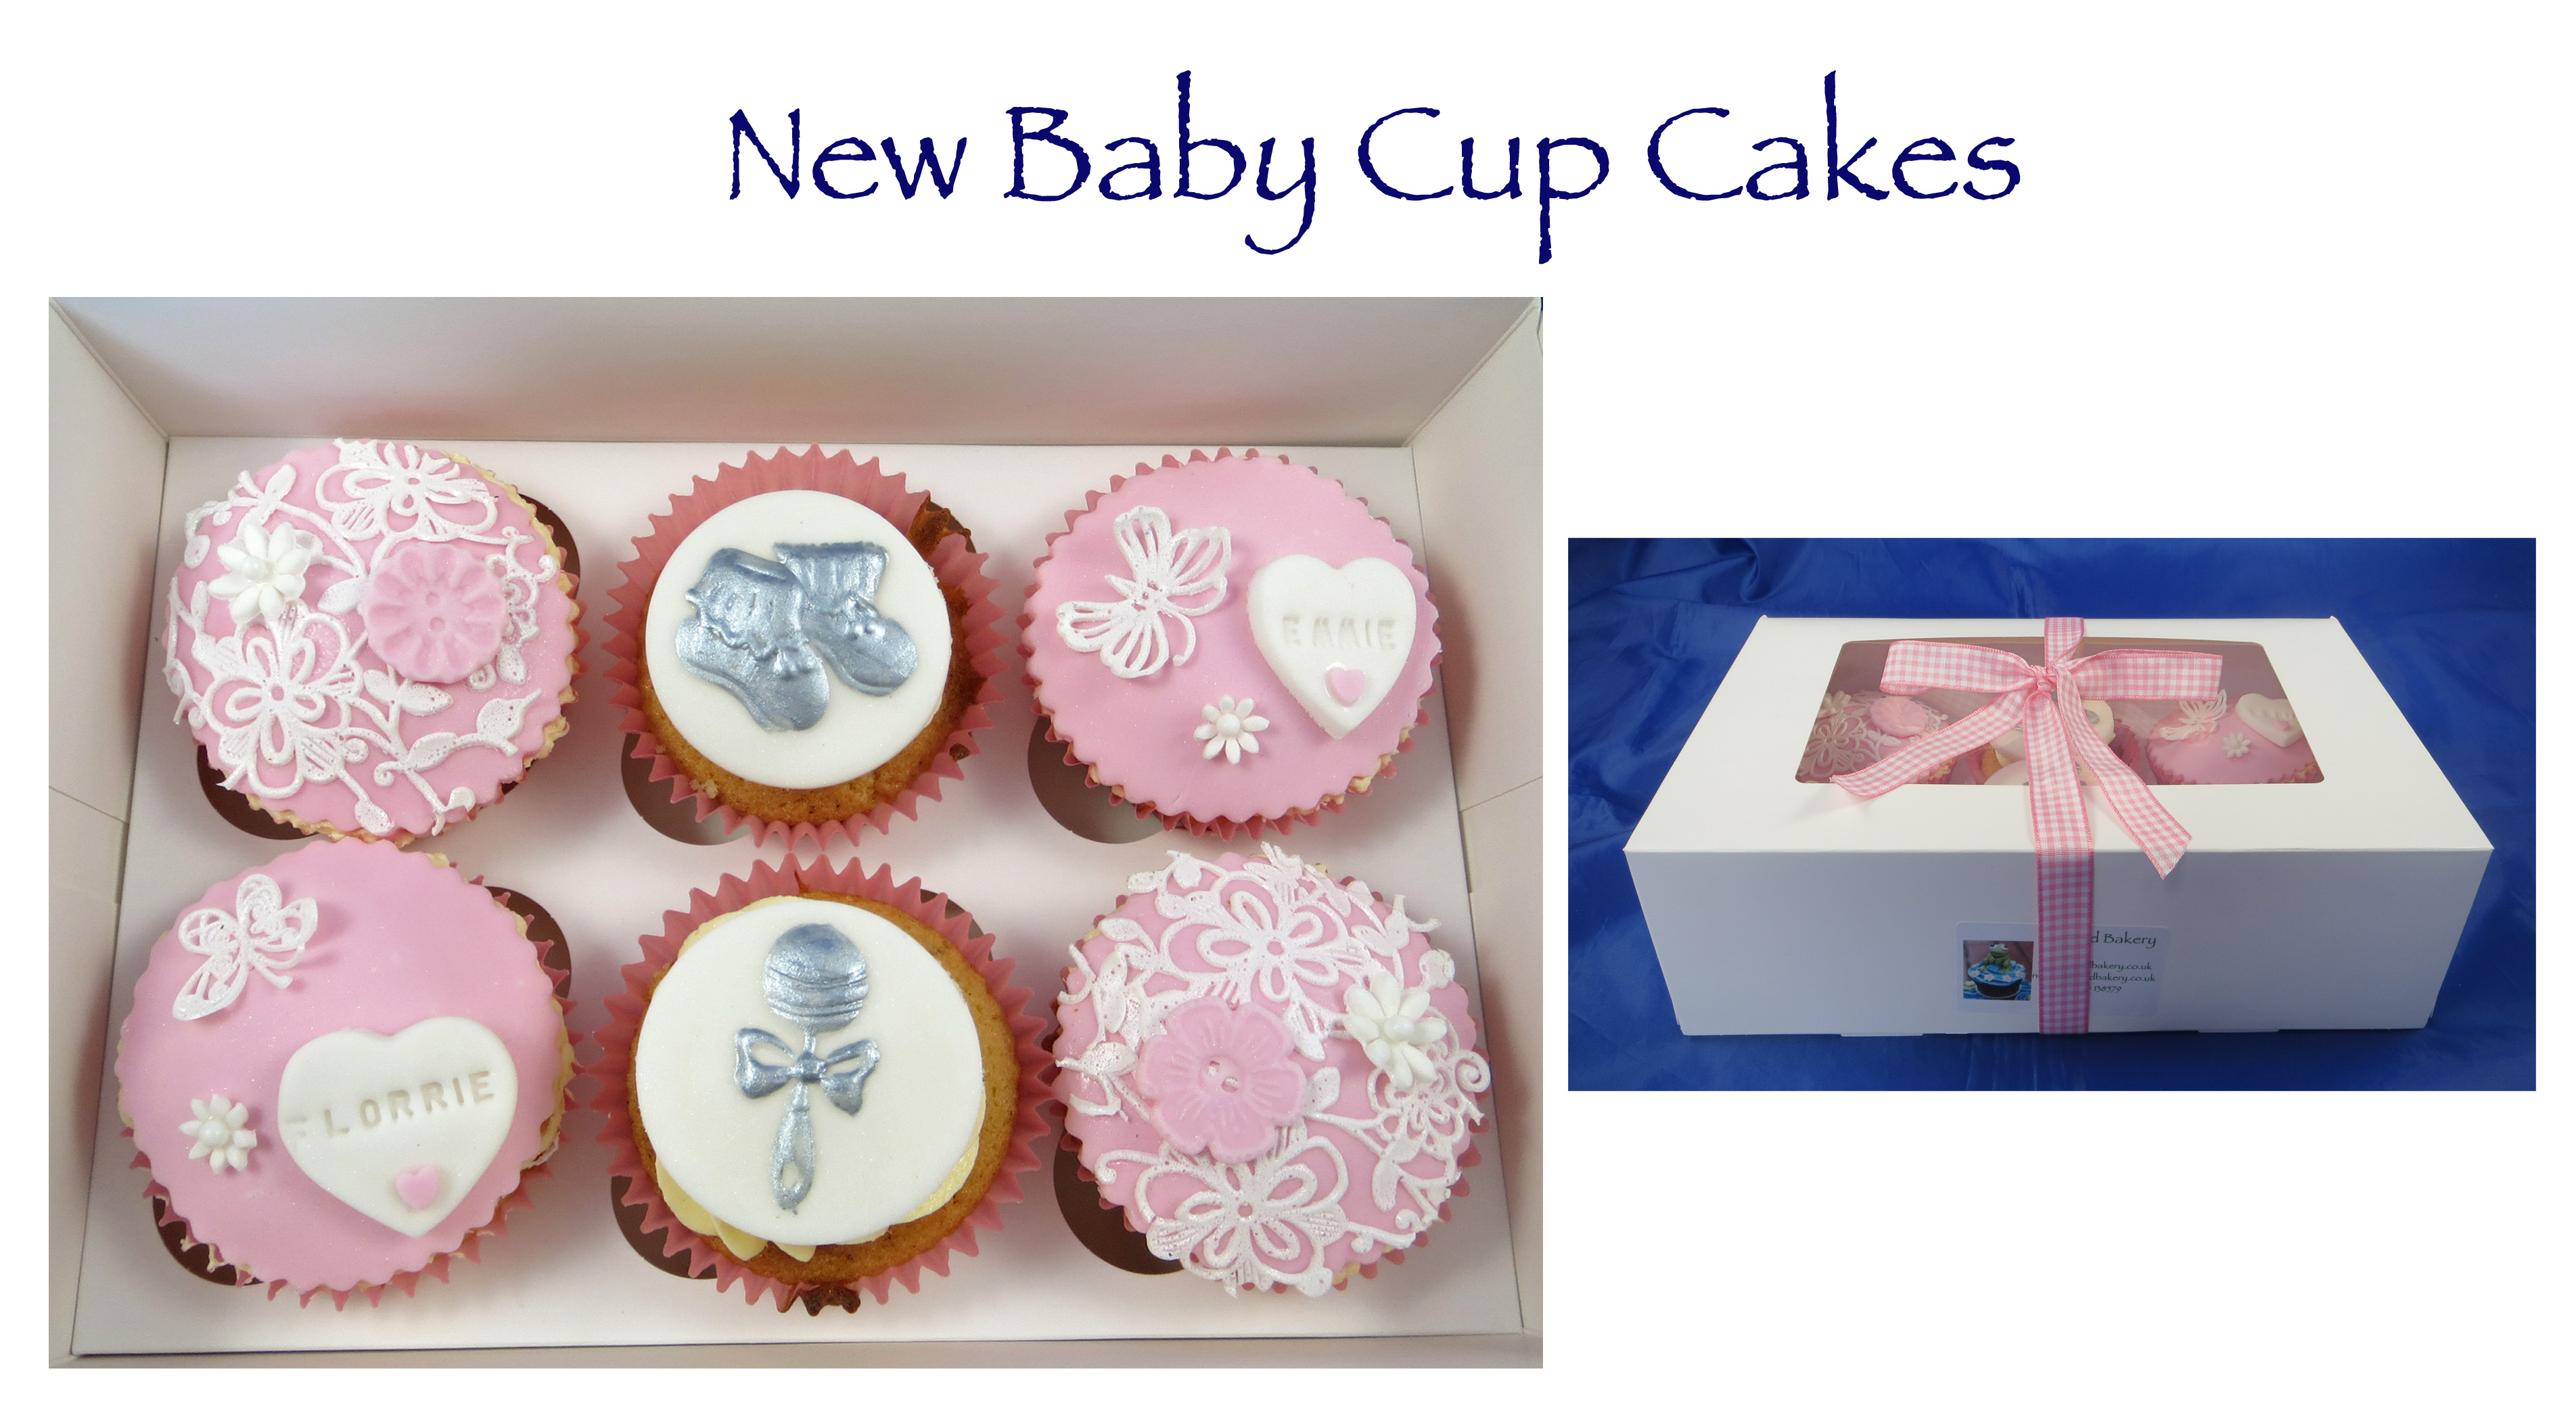 New Baby Cupcakes (Florrie and Emmie)_edited-1